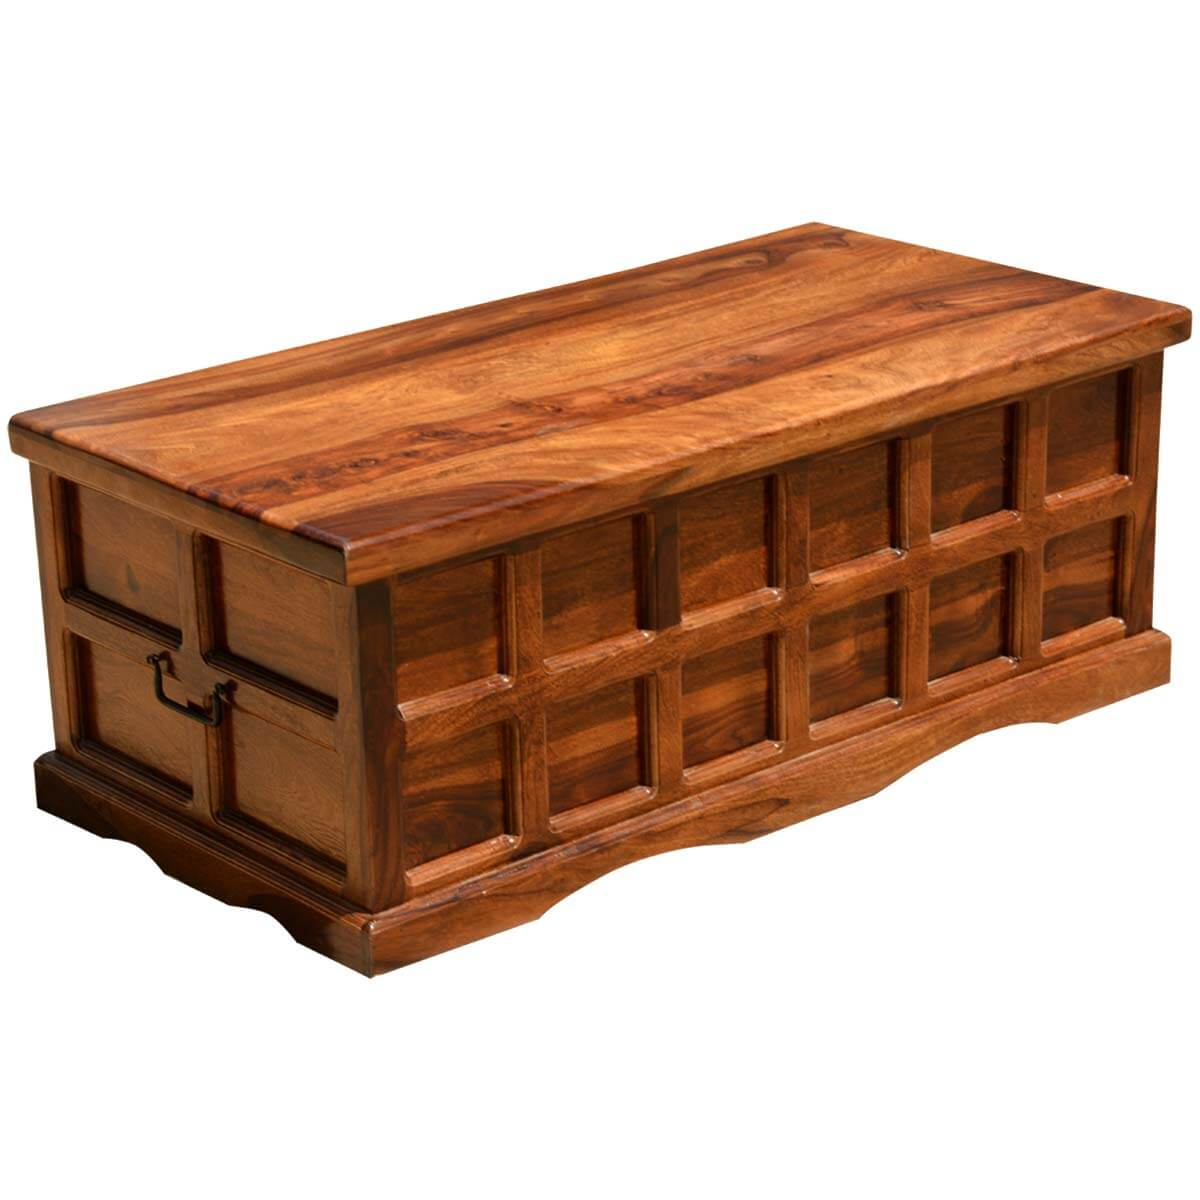 solid wood handmade traditional coffee table storage box chest. Black Bedroom Furniture Sets. Home Design Ideas